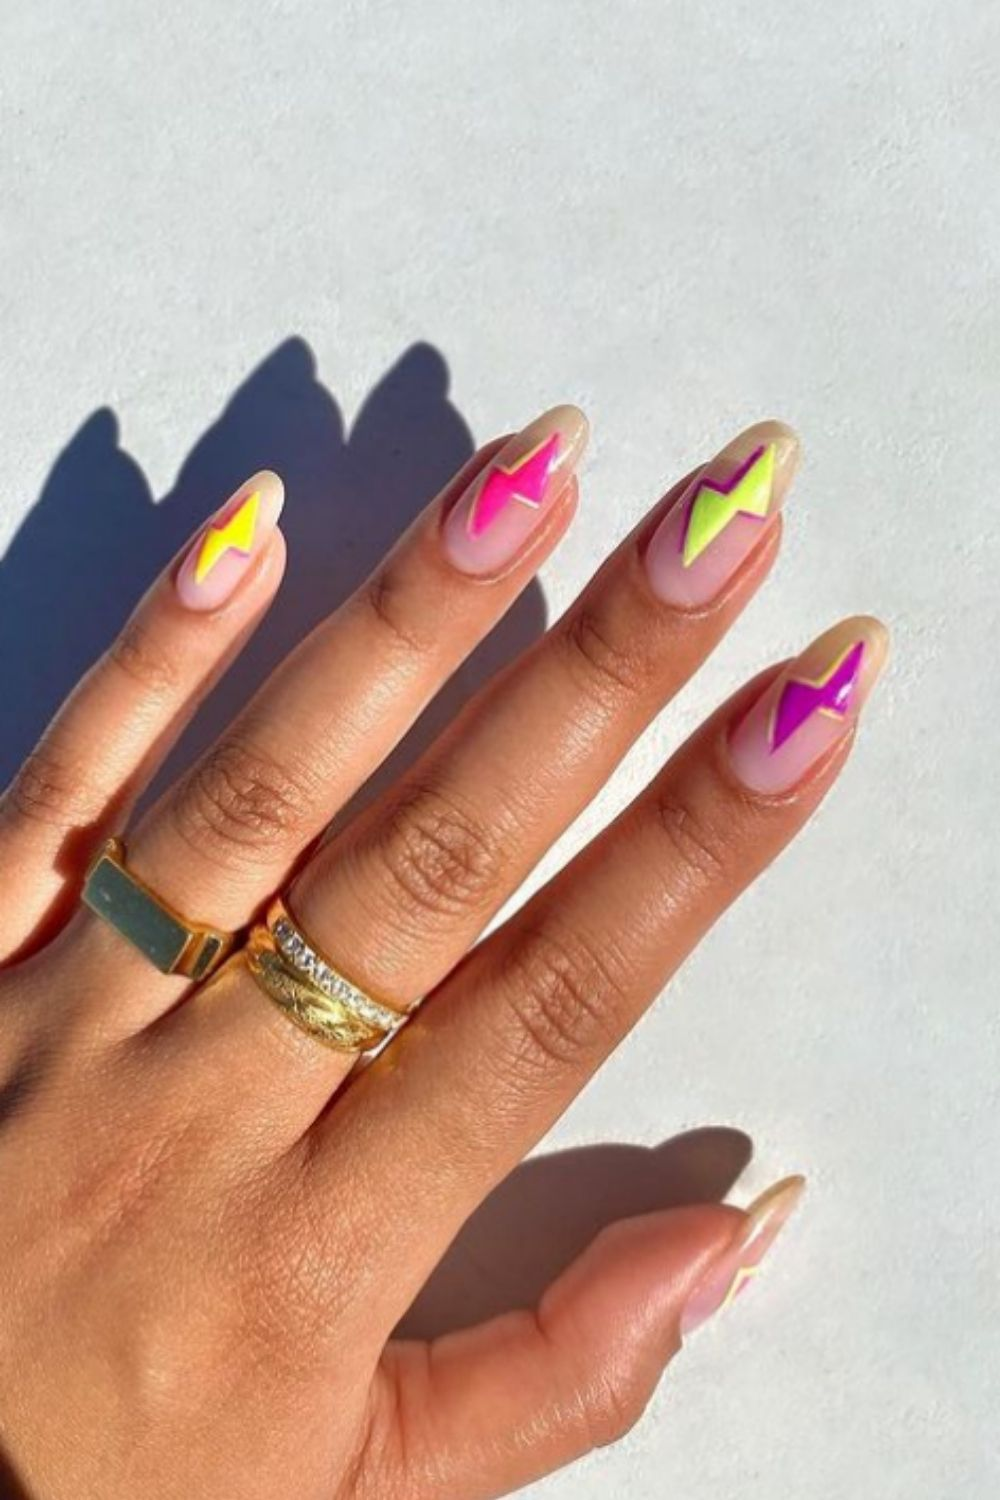 Summer almond nails   To Be All About the Almond Nails This Summer